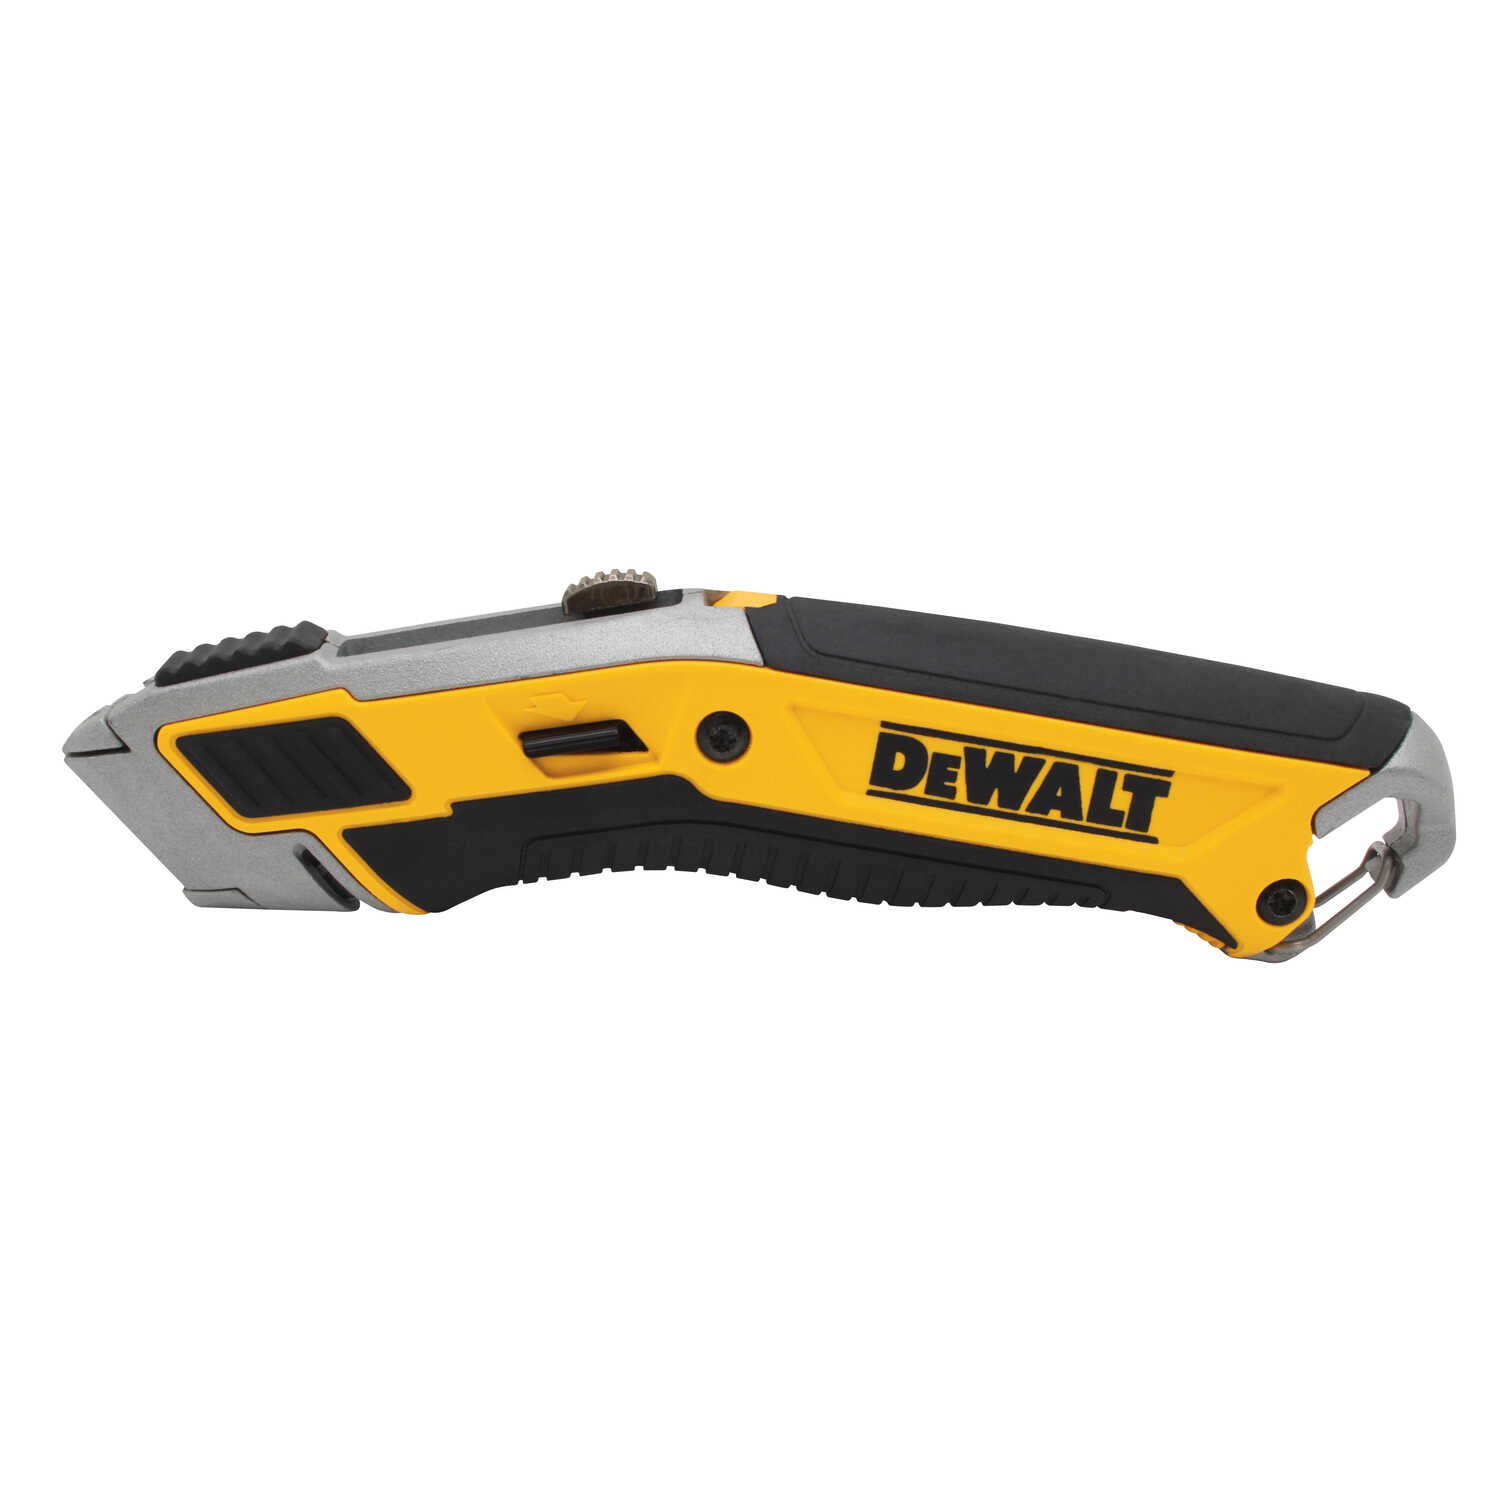 DeWalt  7 in. Retractable  Utility Knife  Black/Yellow  1 pk